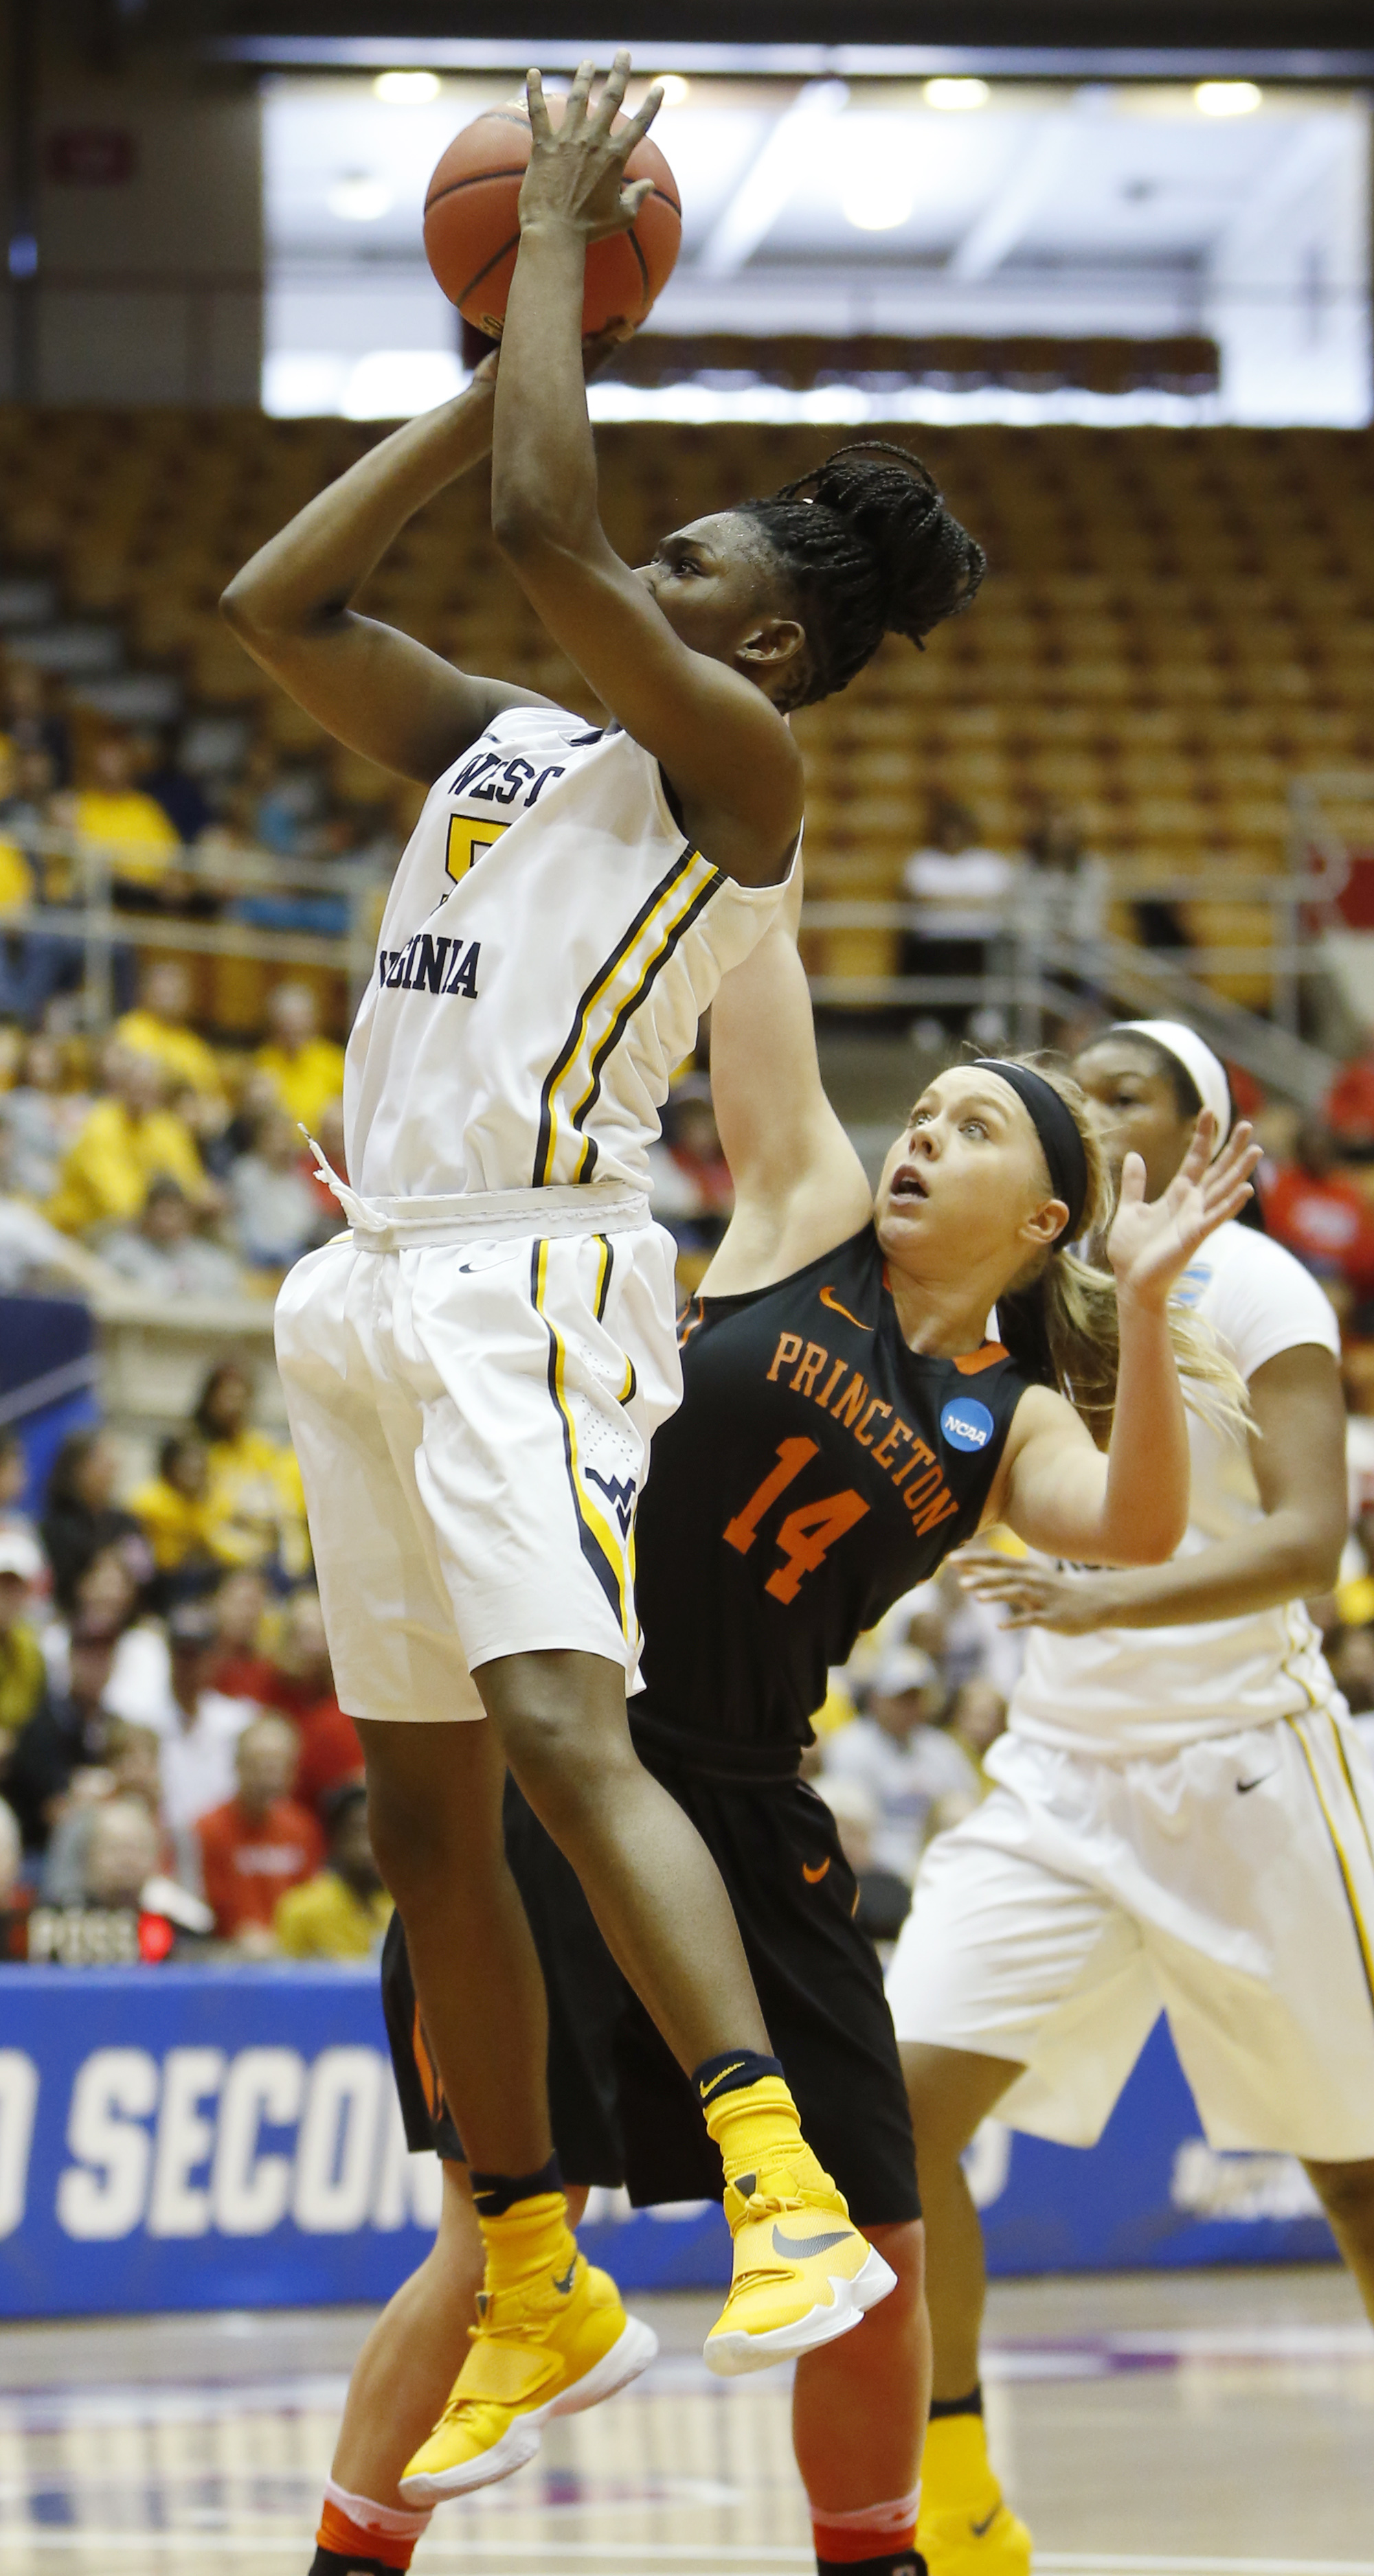 West Virginia's Tynice Martin, left, shoots the ball after dribbling past Princeton's Amanda Berntsen during a first-round women's college basketball game in the NCAA Tournament Friday, March 18, 2016, in Columbus, Ohio. West Virginia beat Princeton 74-65